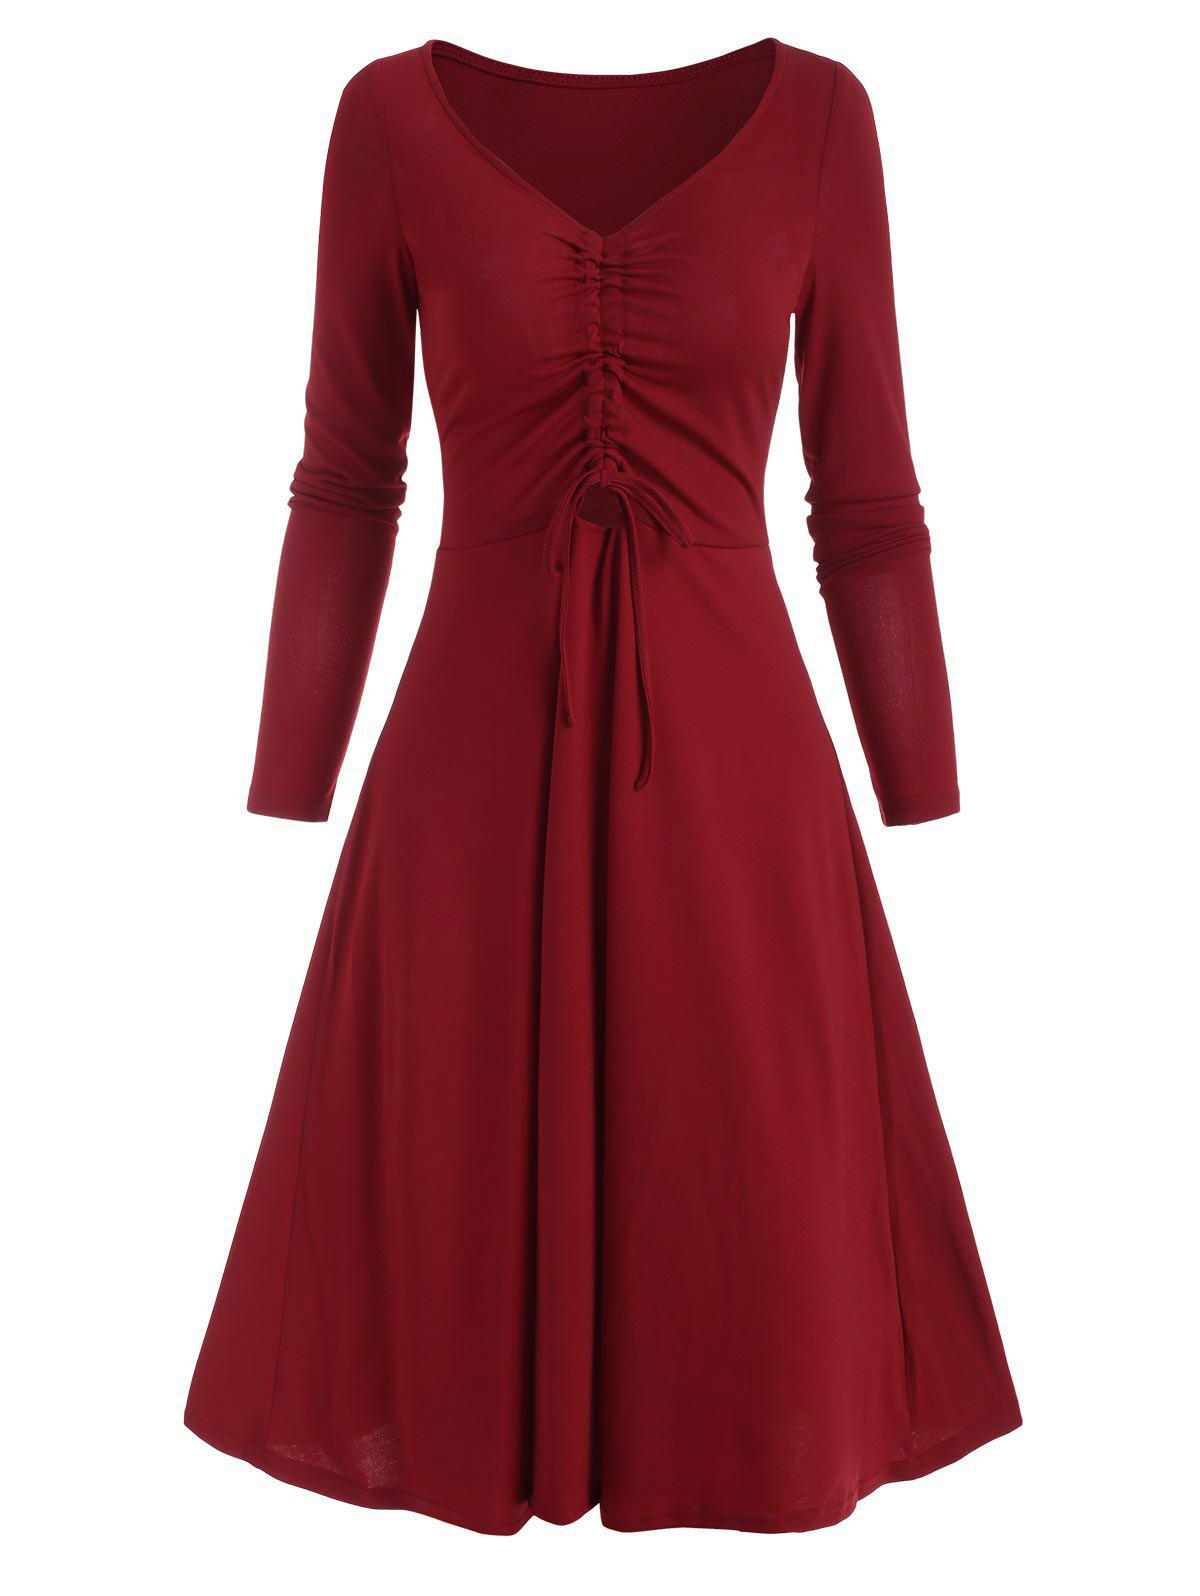 Cinched Ruched Front A Line Long Sleeve Dress - DEEP RED XL